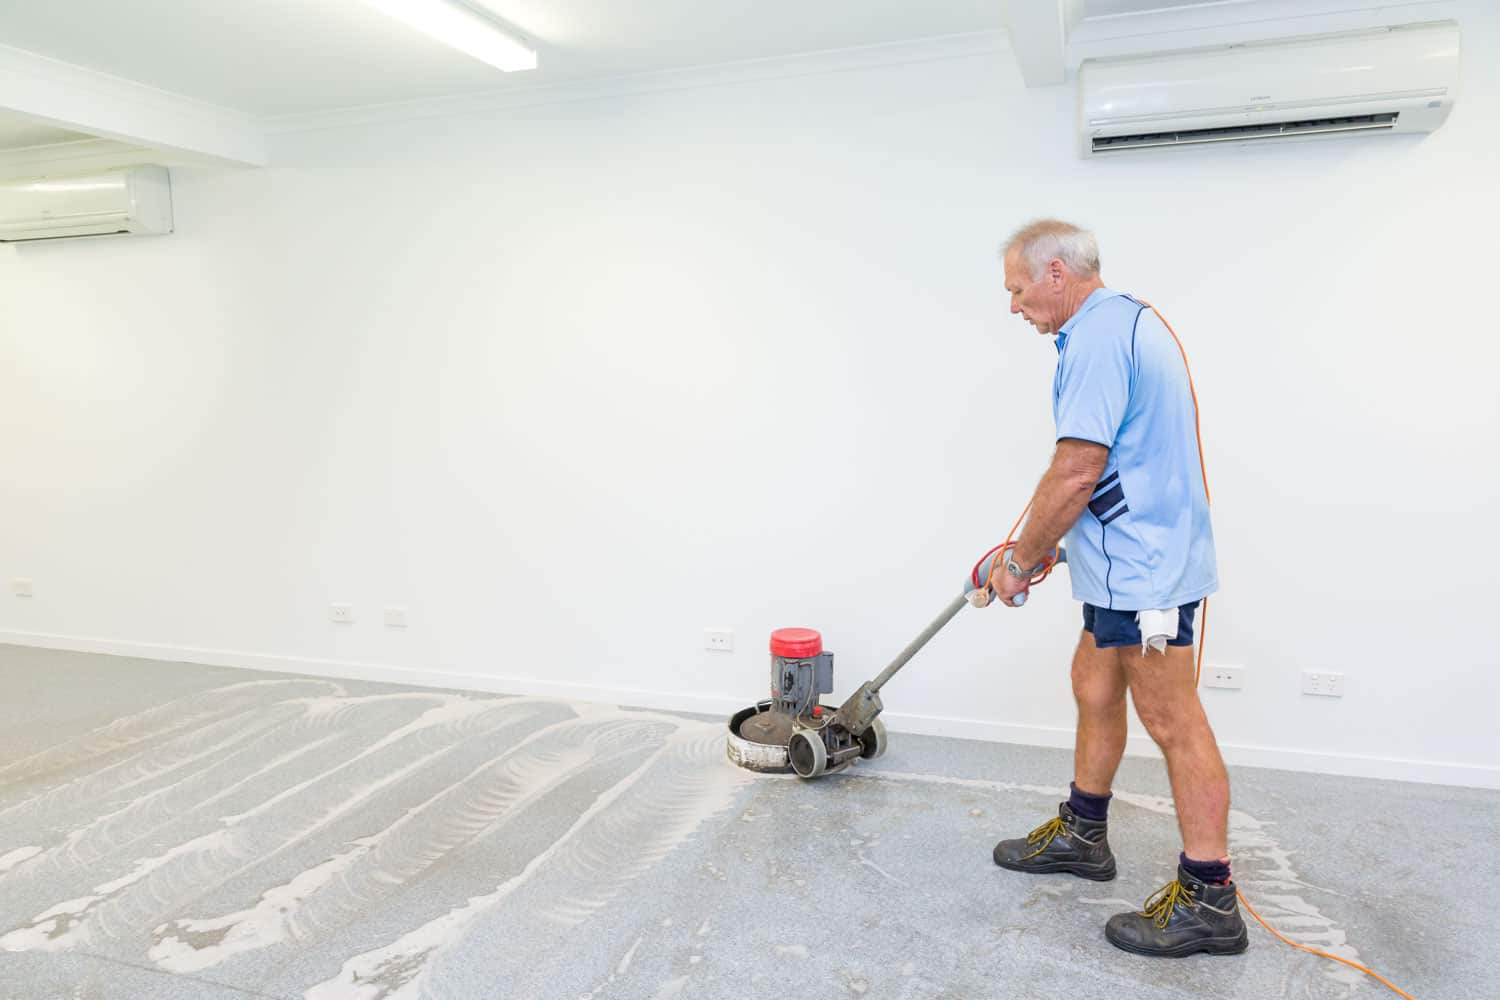 Stripping and Sealing Floors Sydney